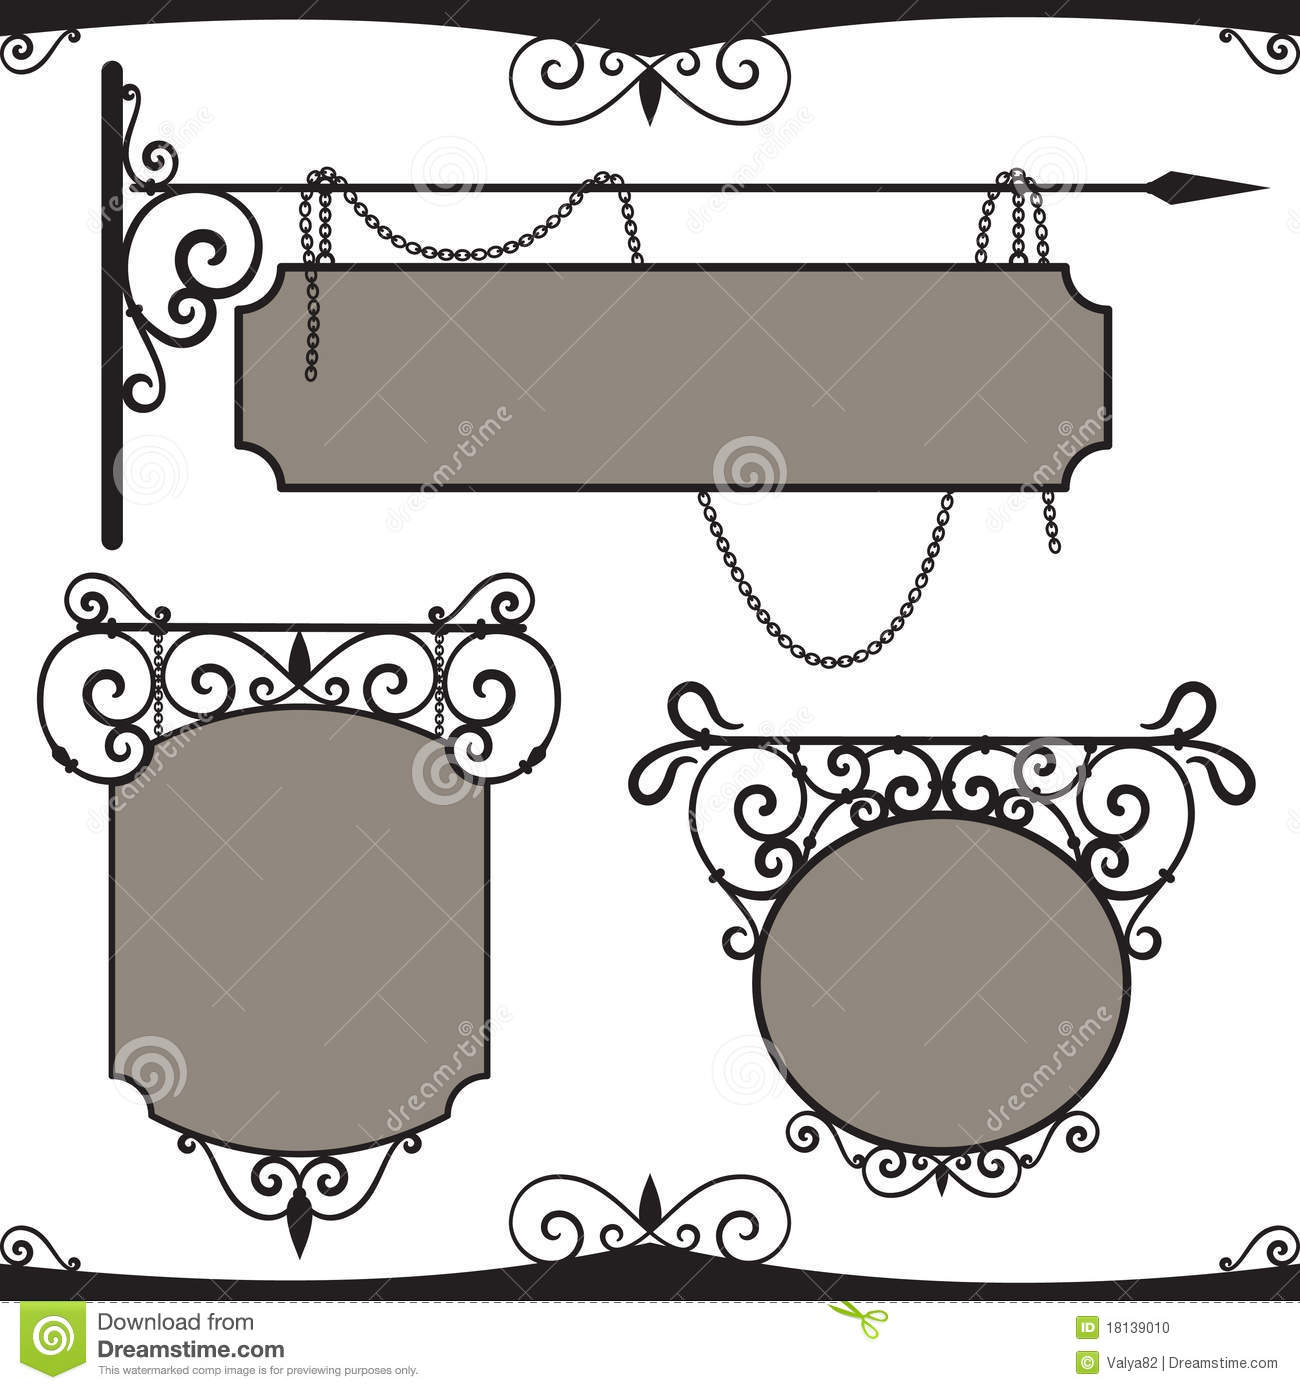 wrought iron signs stock illustrations 73 wrought iron signs stock